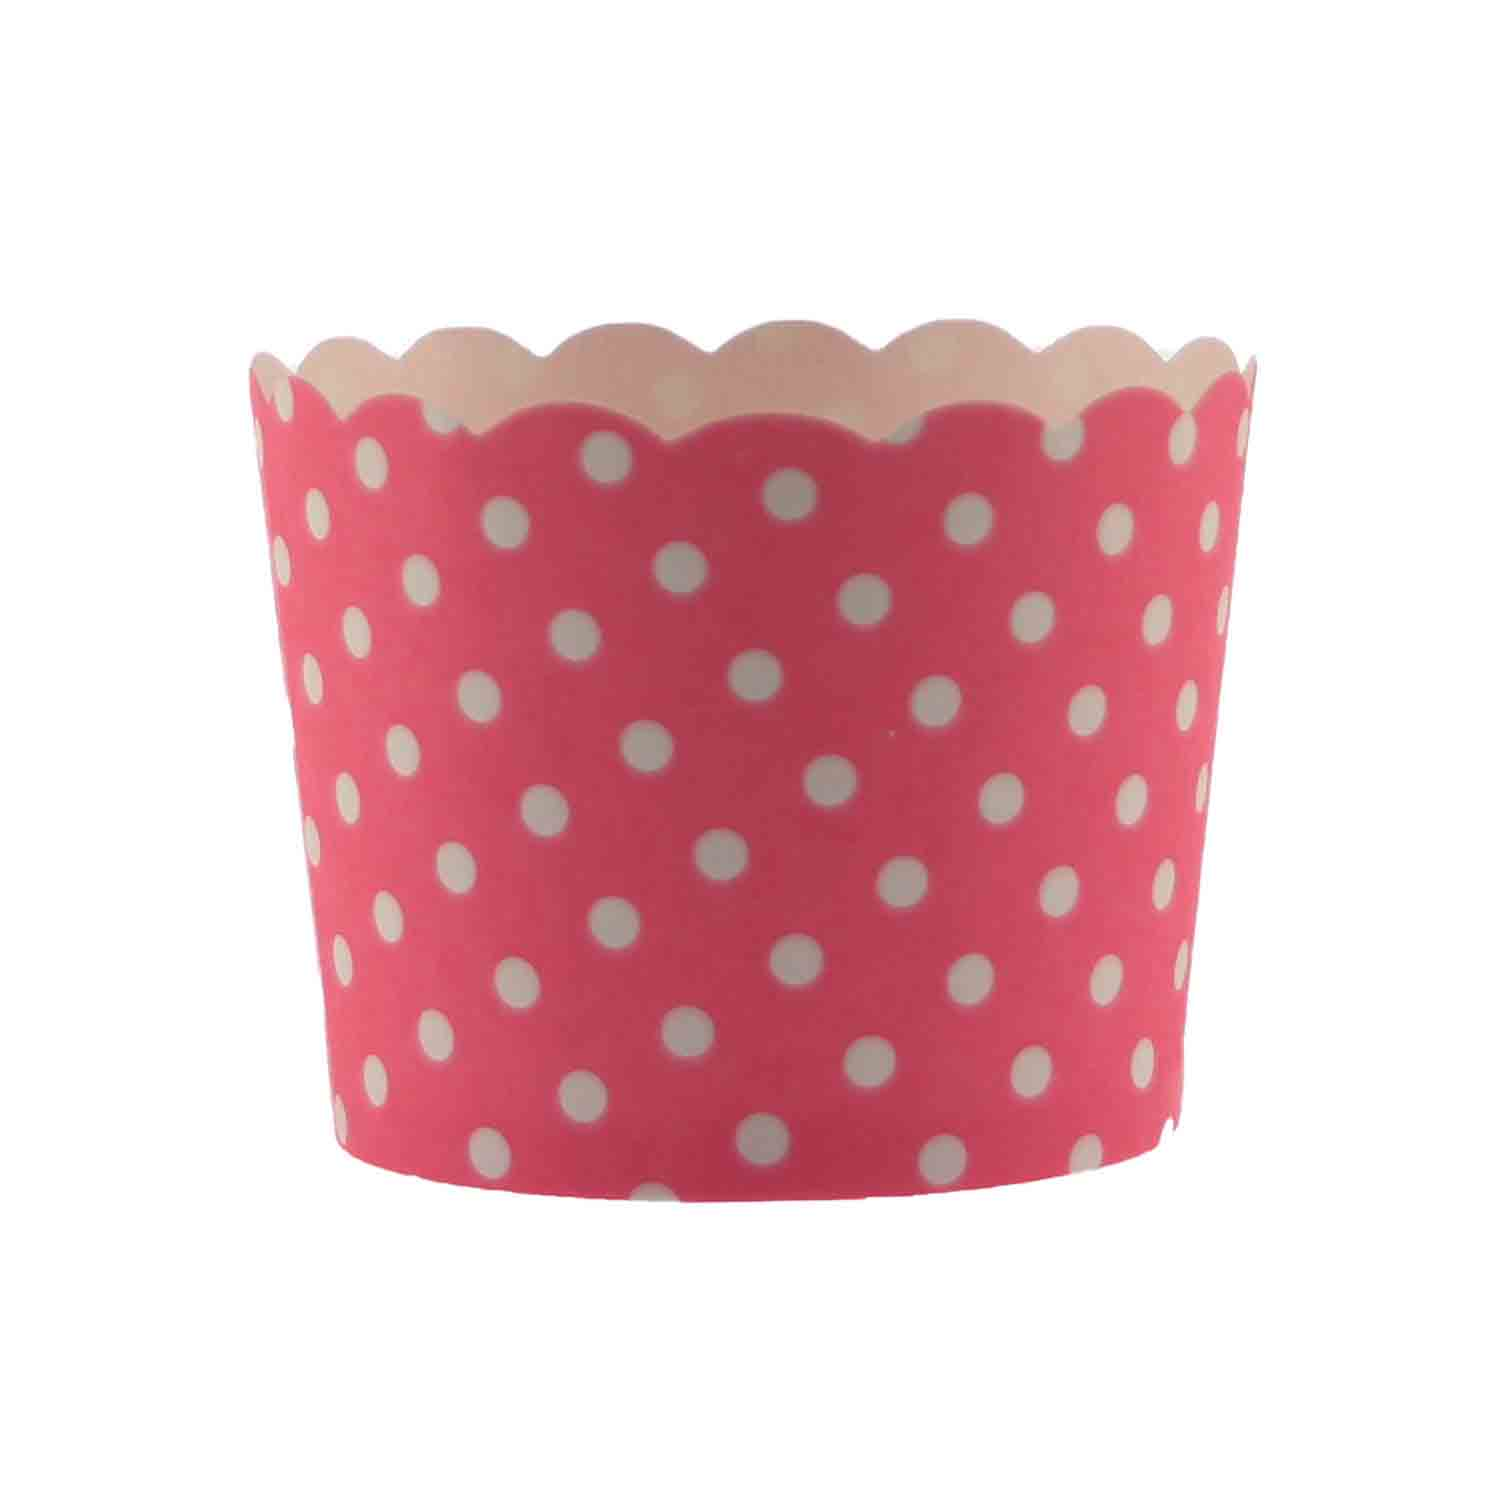 Pink Polka Dot Bake In Cups - Small